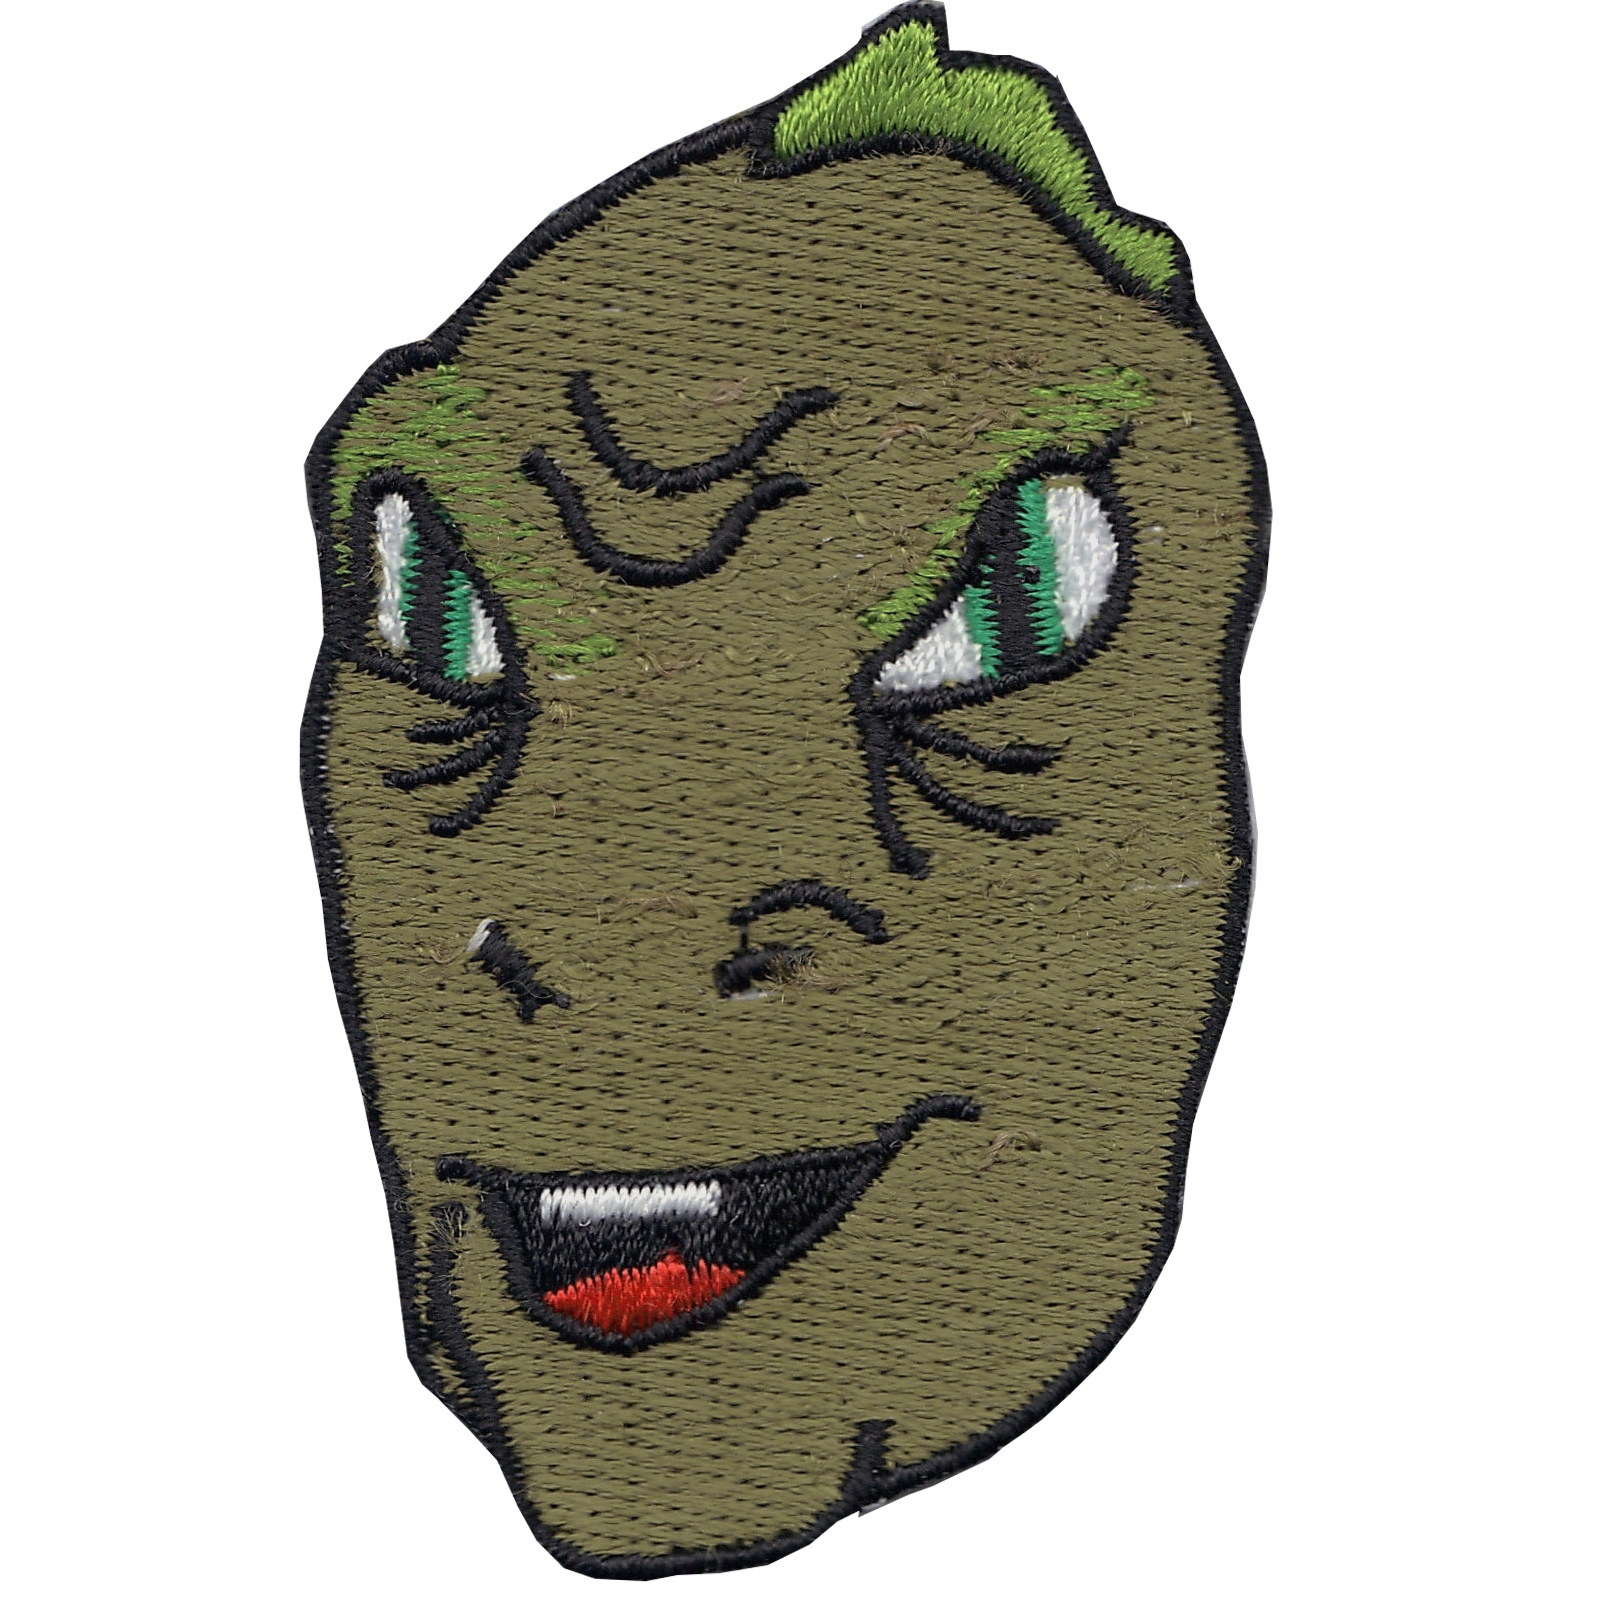 Yee Dinosaur Meme Embroidered Iron on Patch